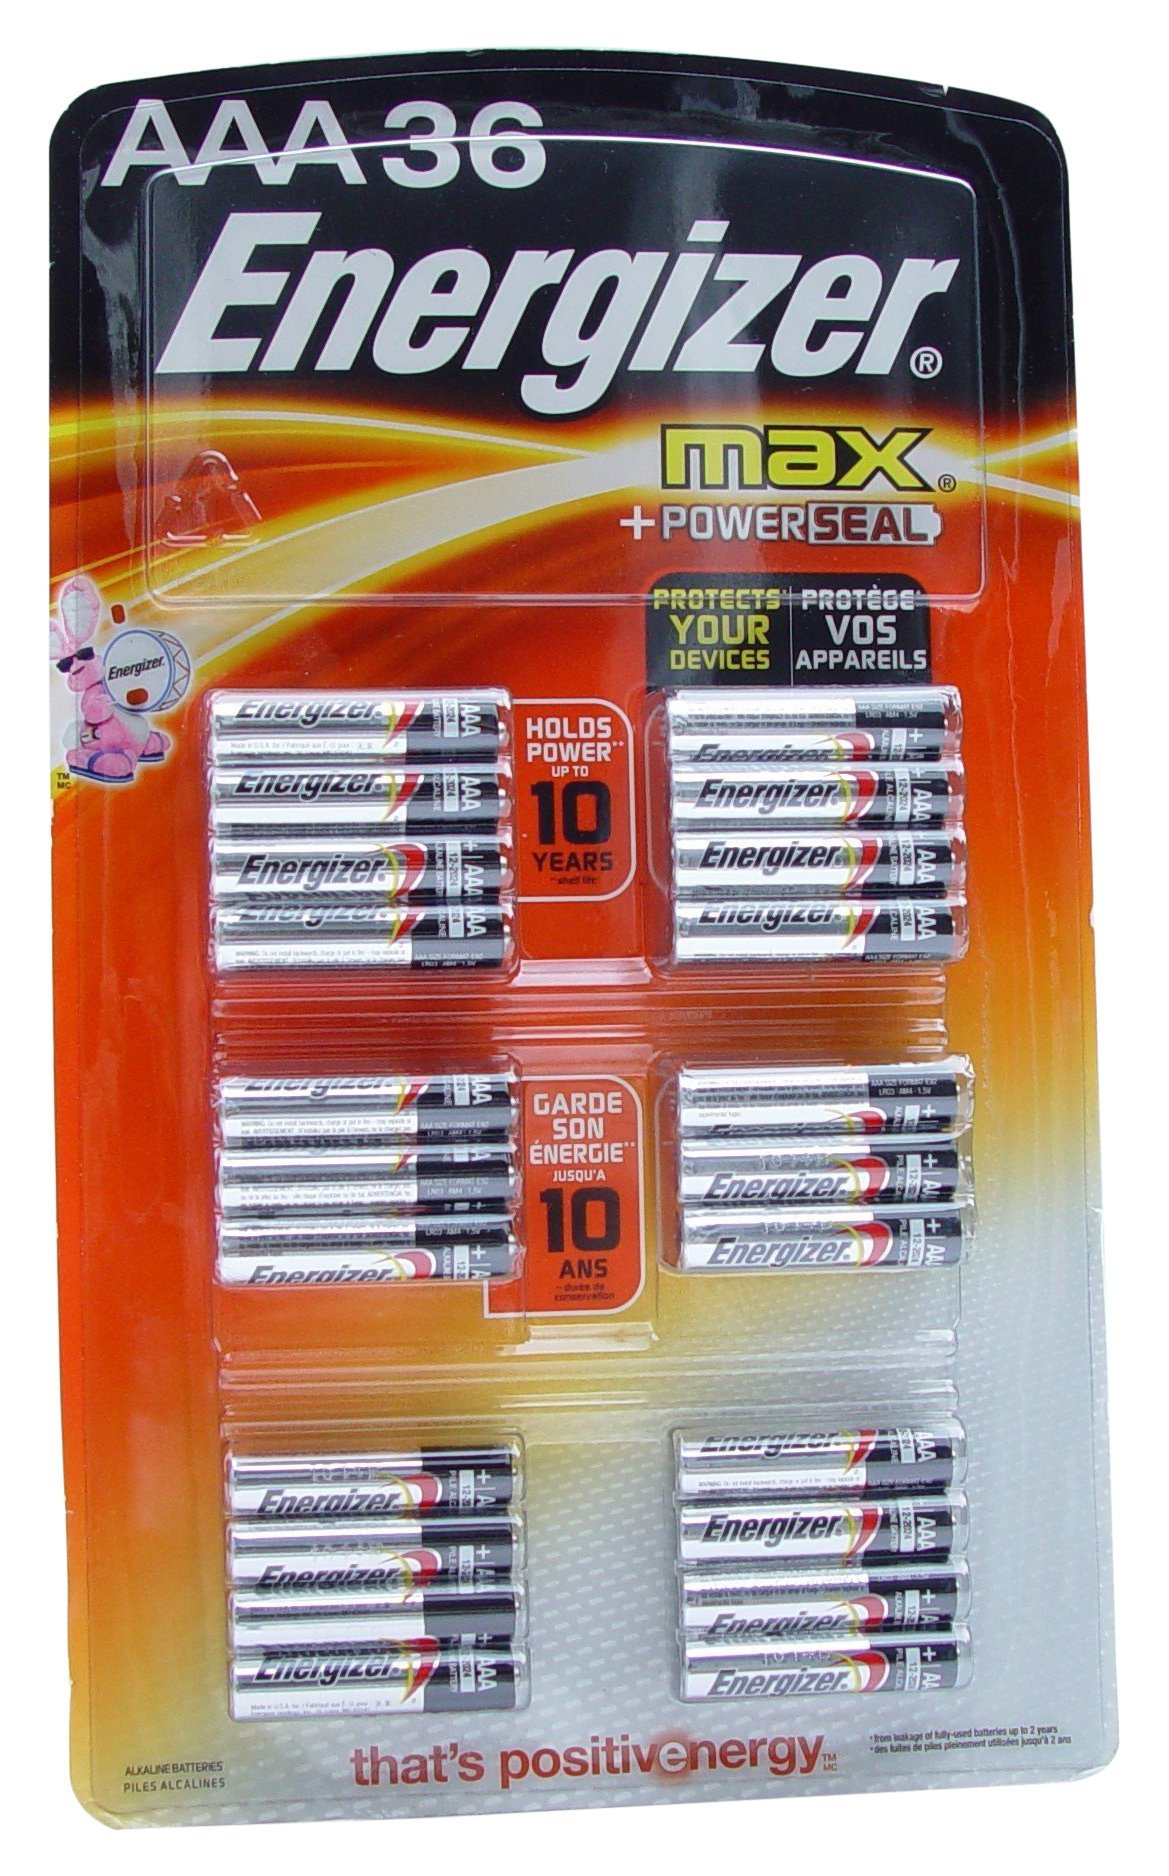 Energizer Max AAA Alkaline Batteries, 36 Count by Energizer